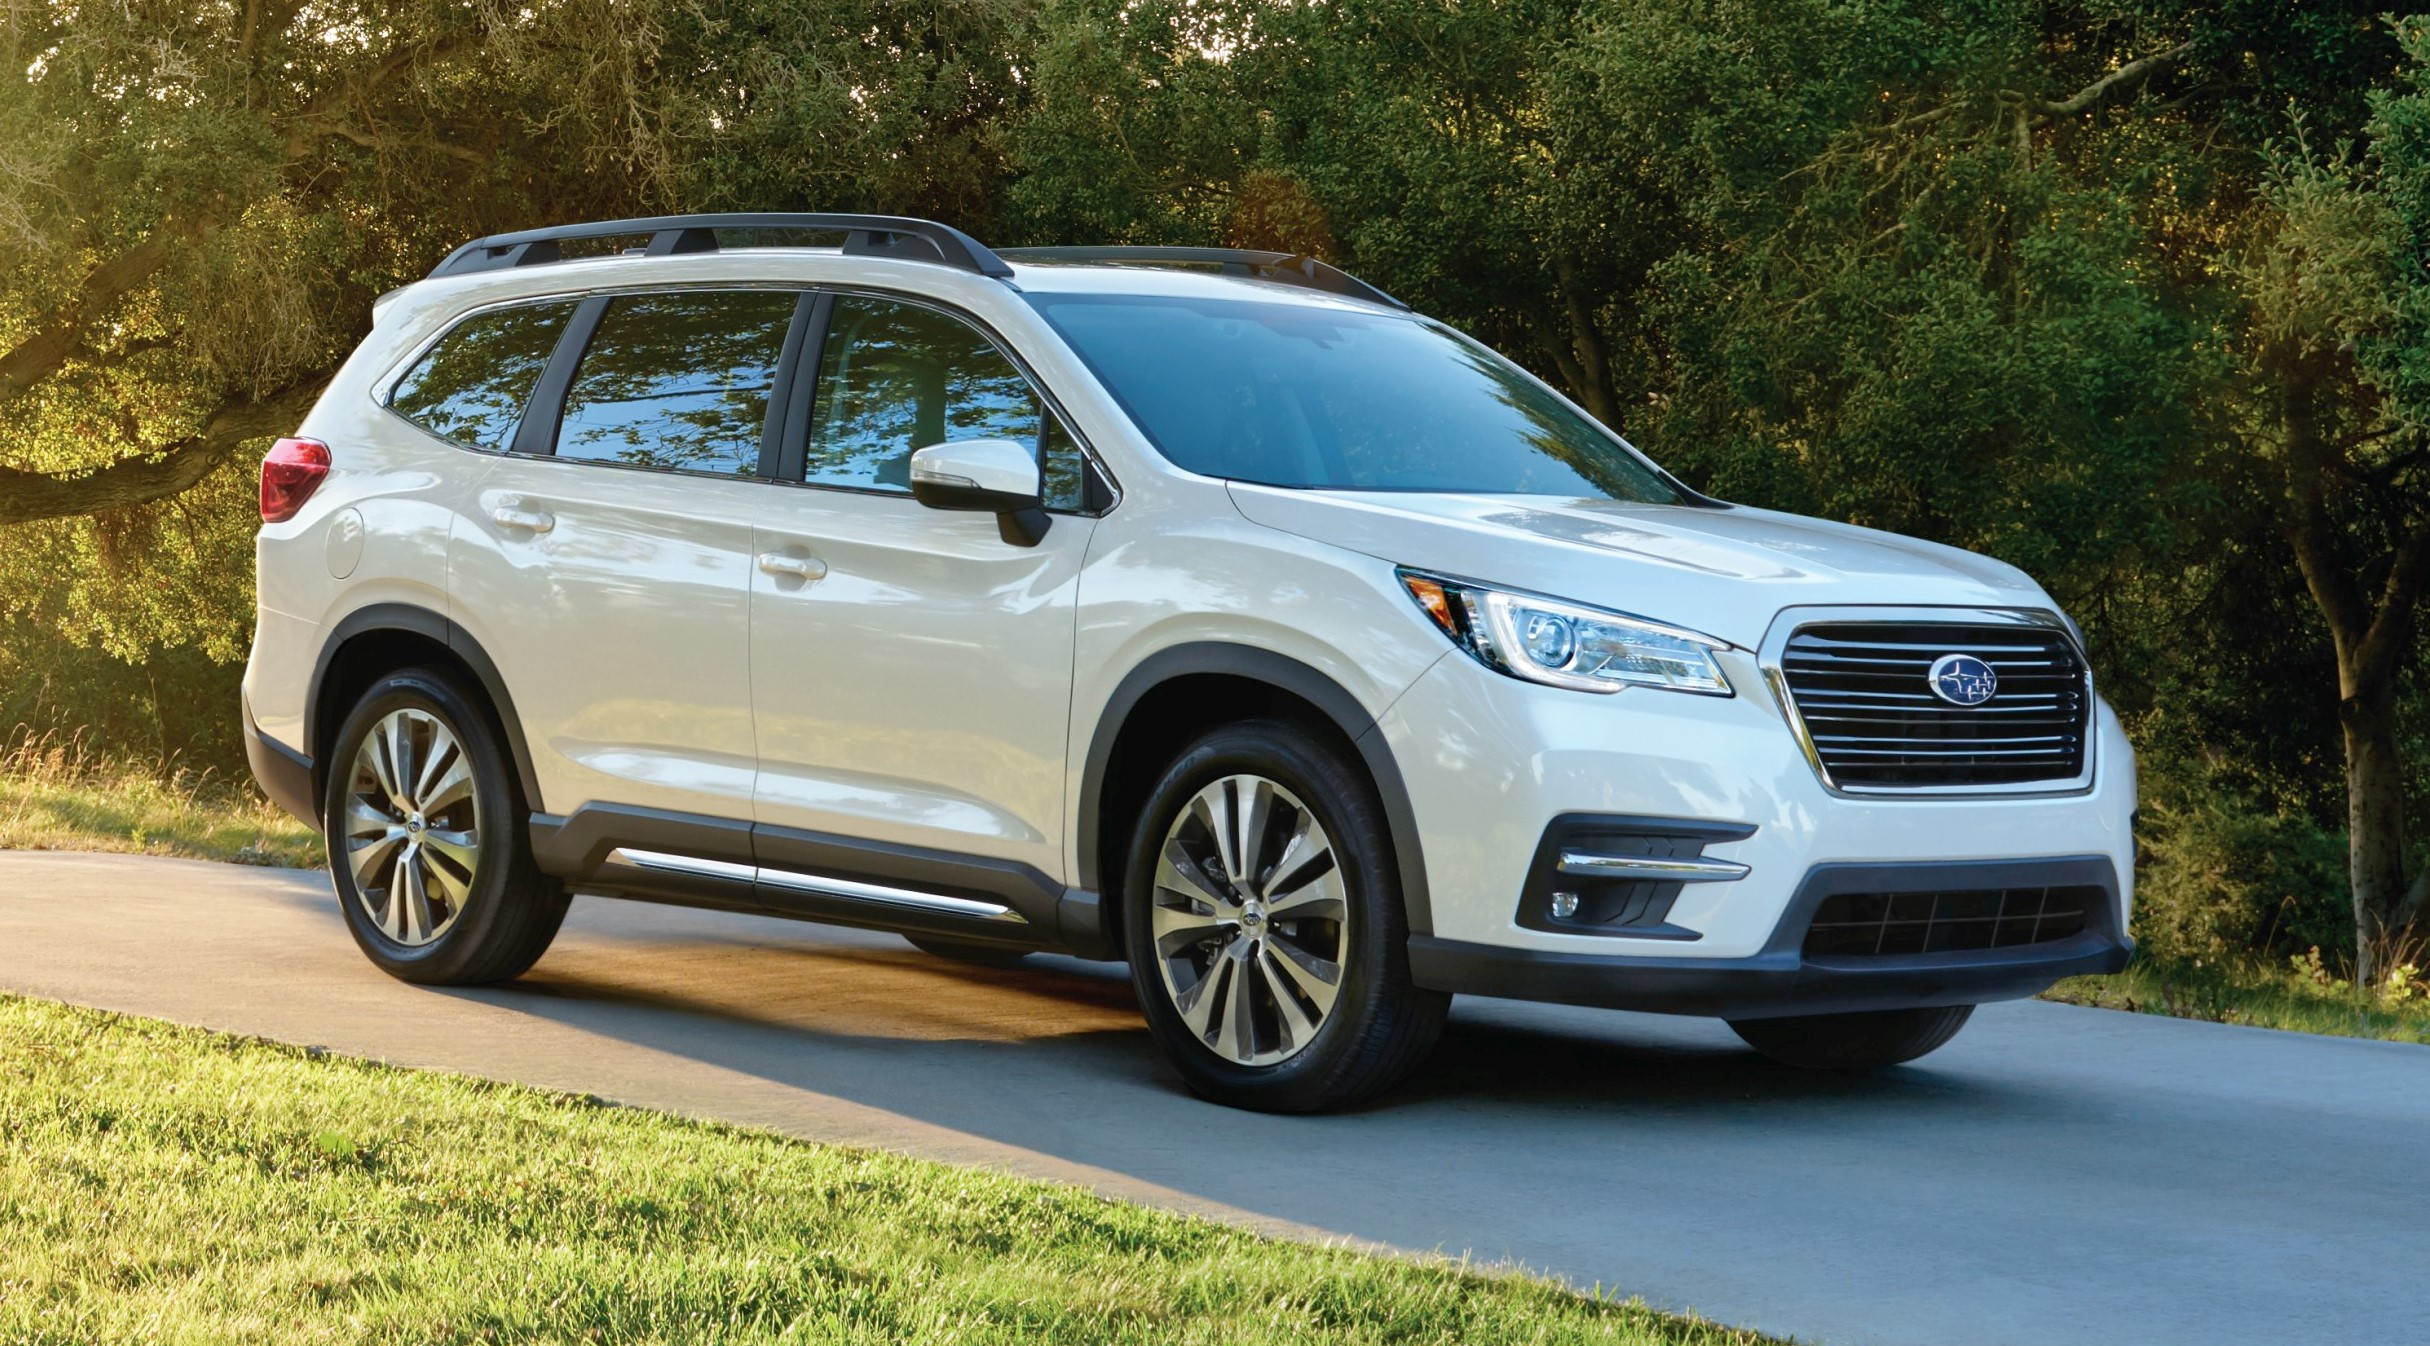 ALL NEW 2019 SUBARU ASCENT 3 ROW SUV myAutoWorld